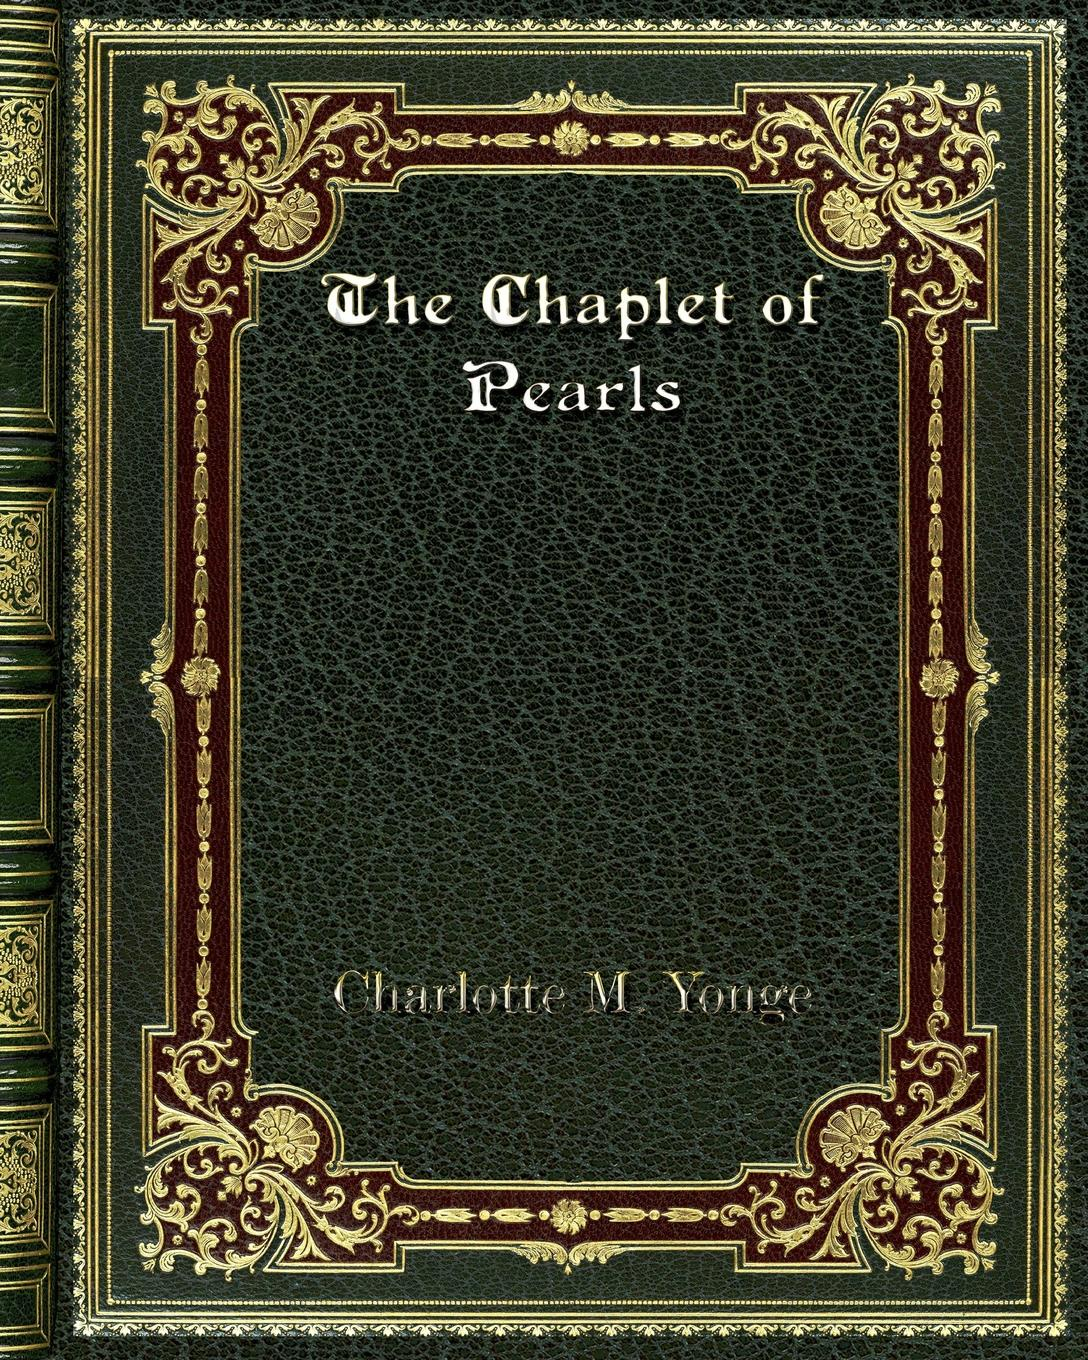 Charlotte M. Yonge The Chaplet of Pearls